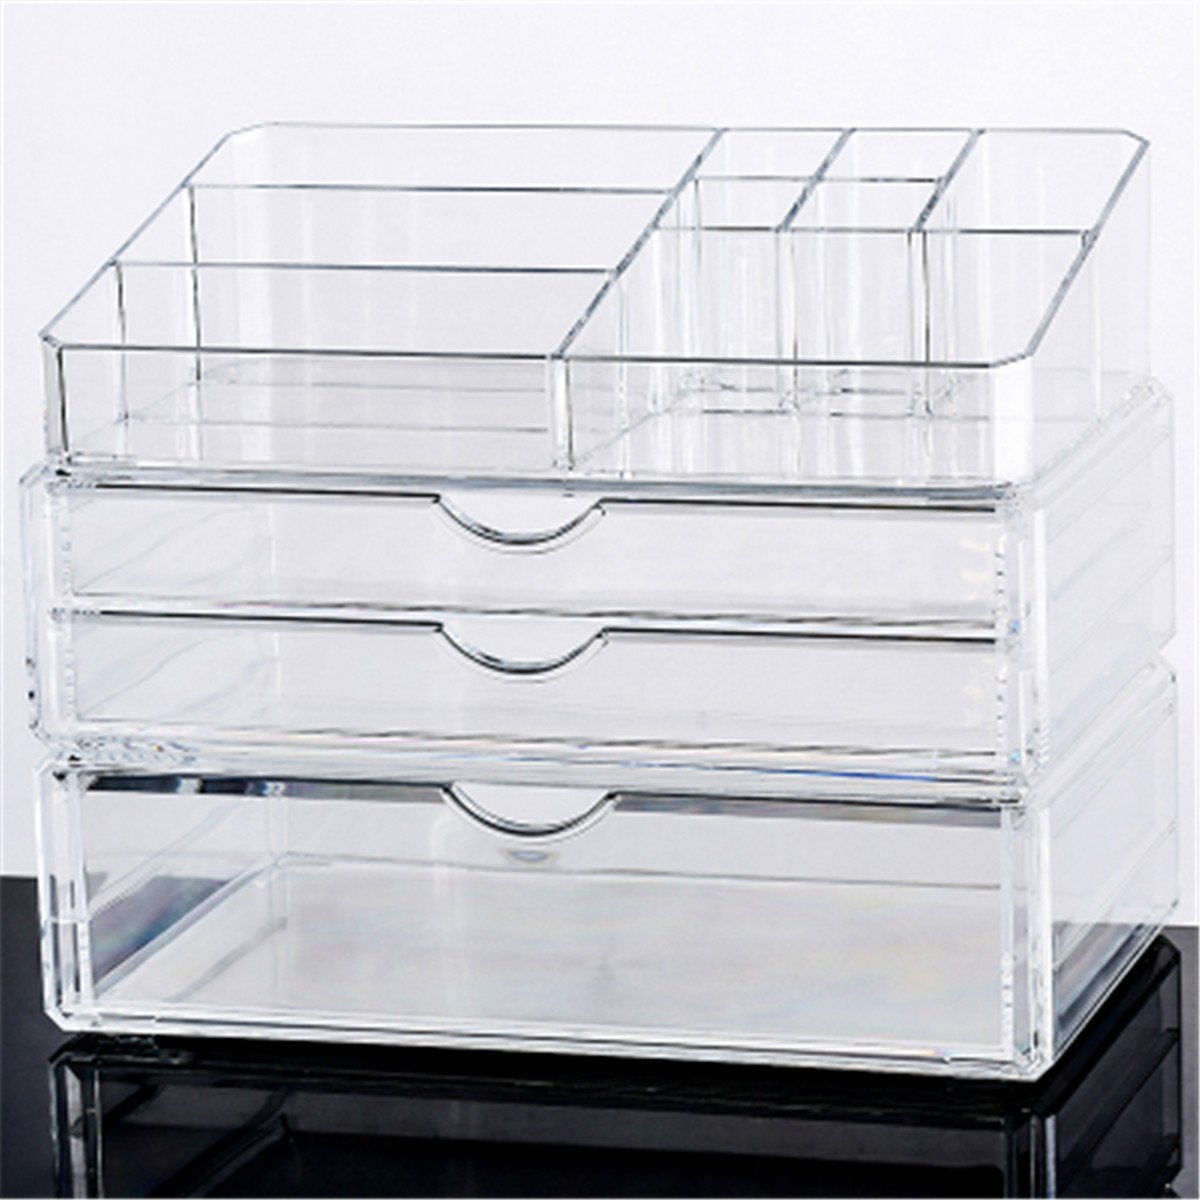 BAIHT HOME Acrylic Clear Makeup Cosmetic Organizer Jewelry Storage Drawers Display Sets Boxes Case Stackable and Interchangeable, 3 Pieces Set